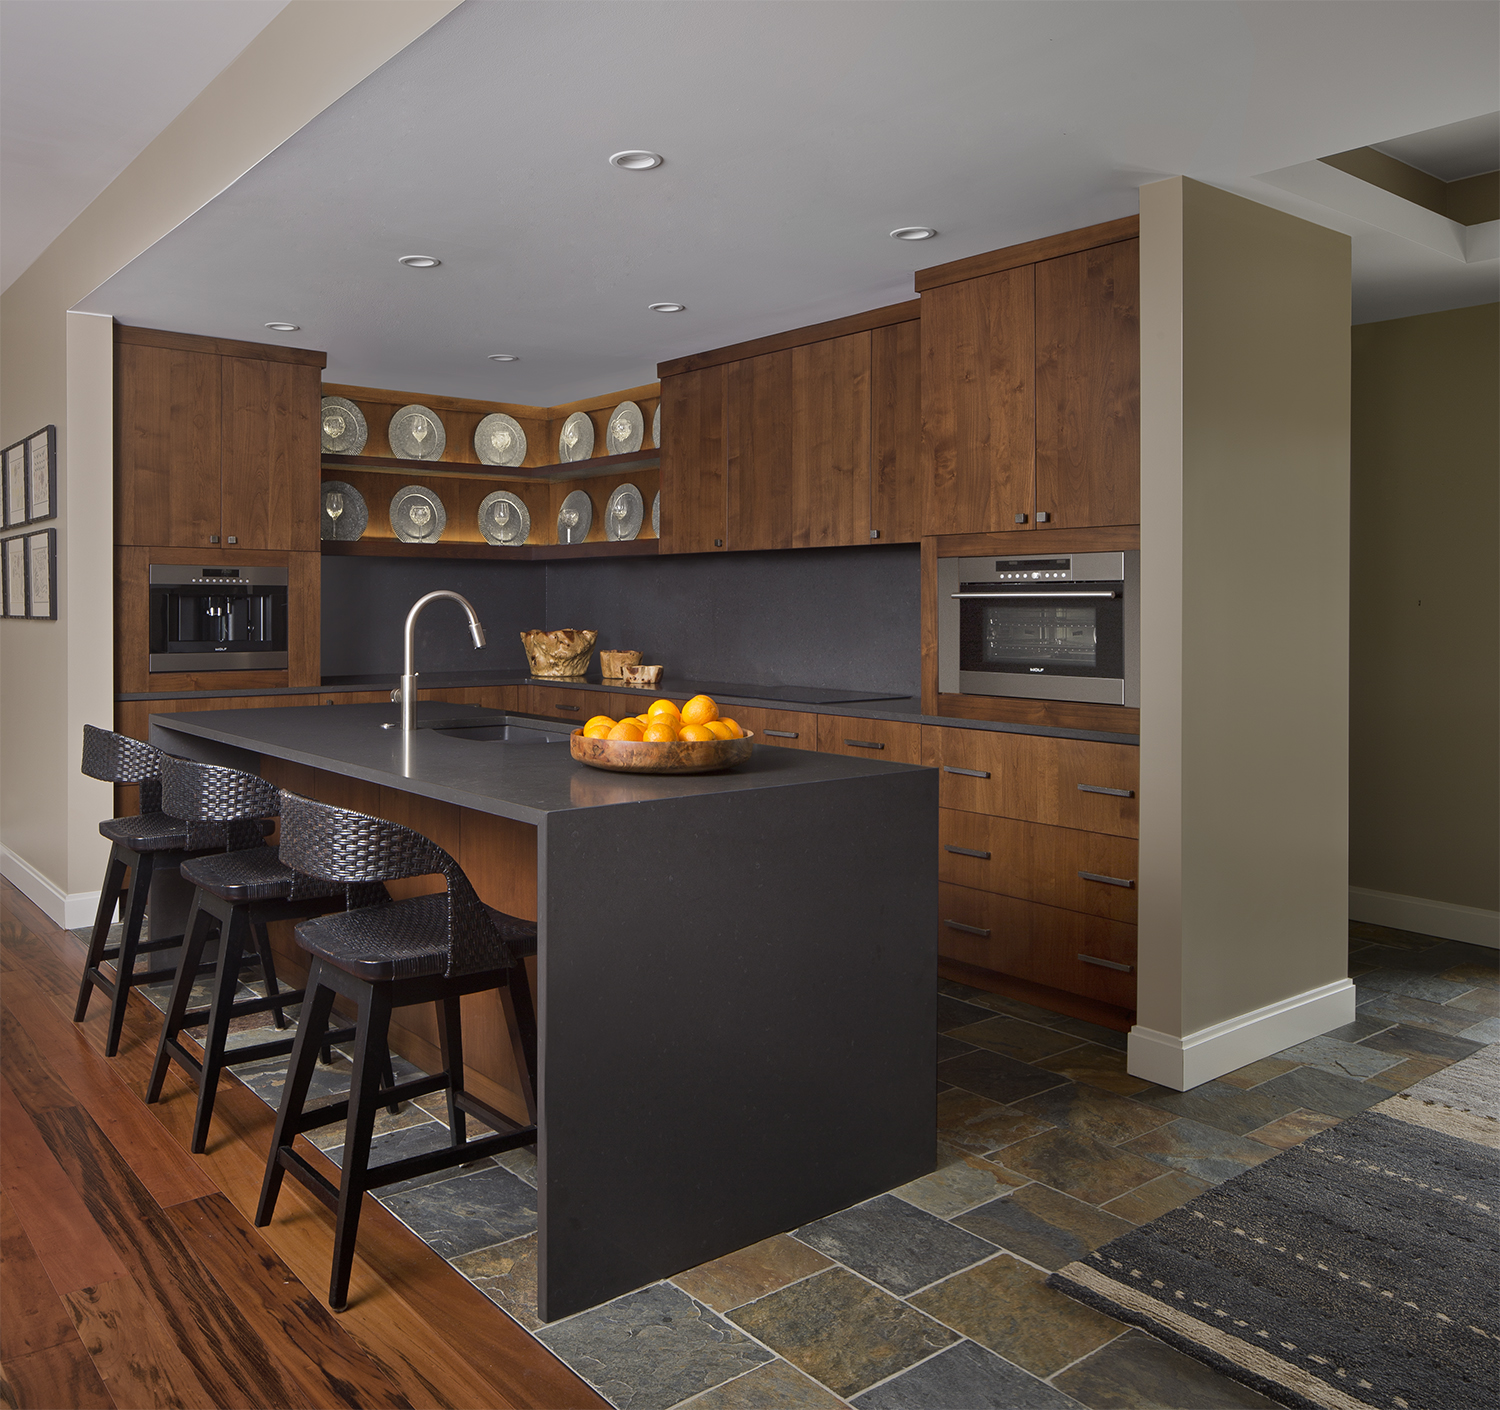 Entertaining Kitchen 2. Dunlap Design Group. Photo by Beth Singer..jpg